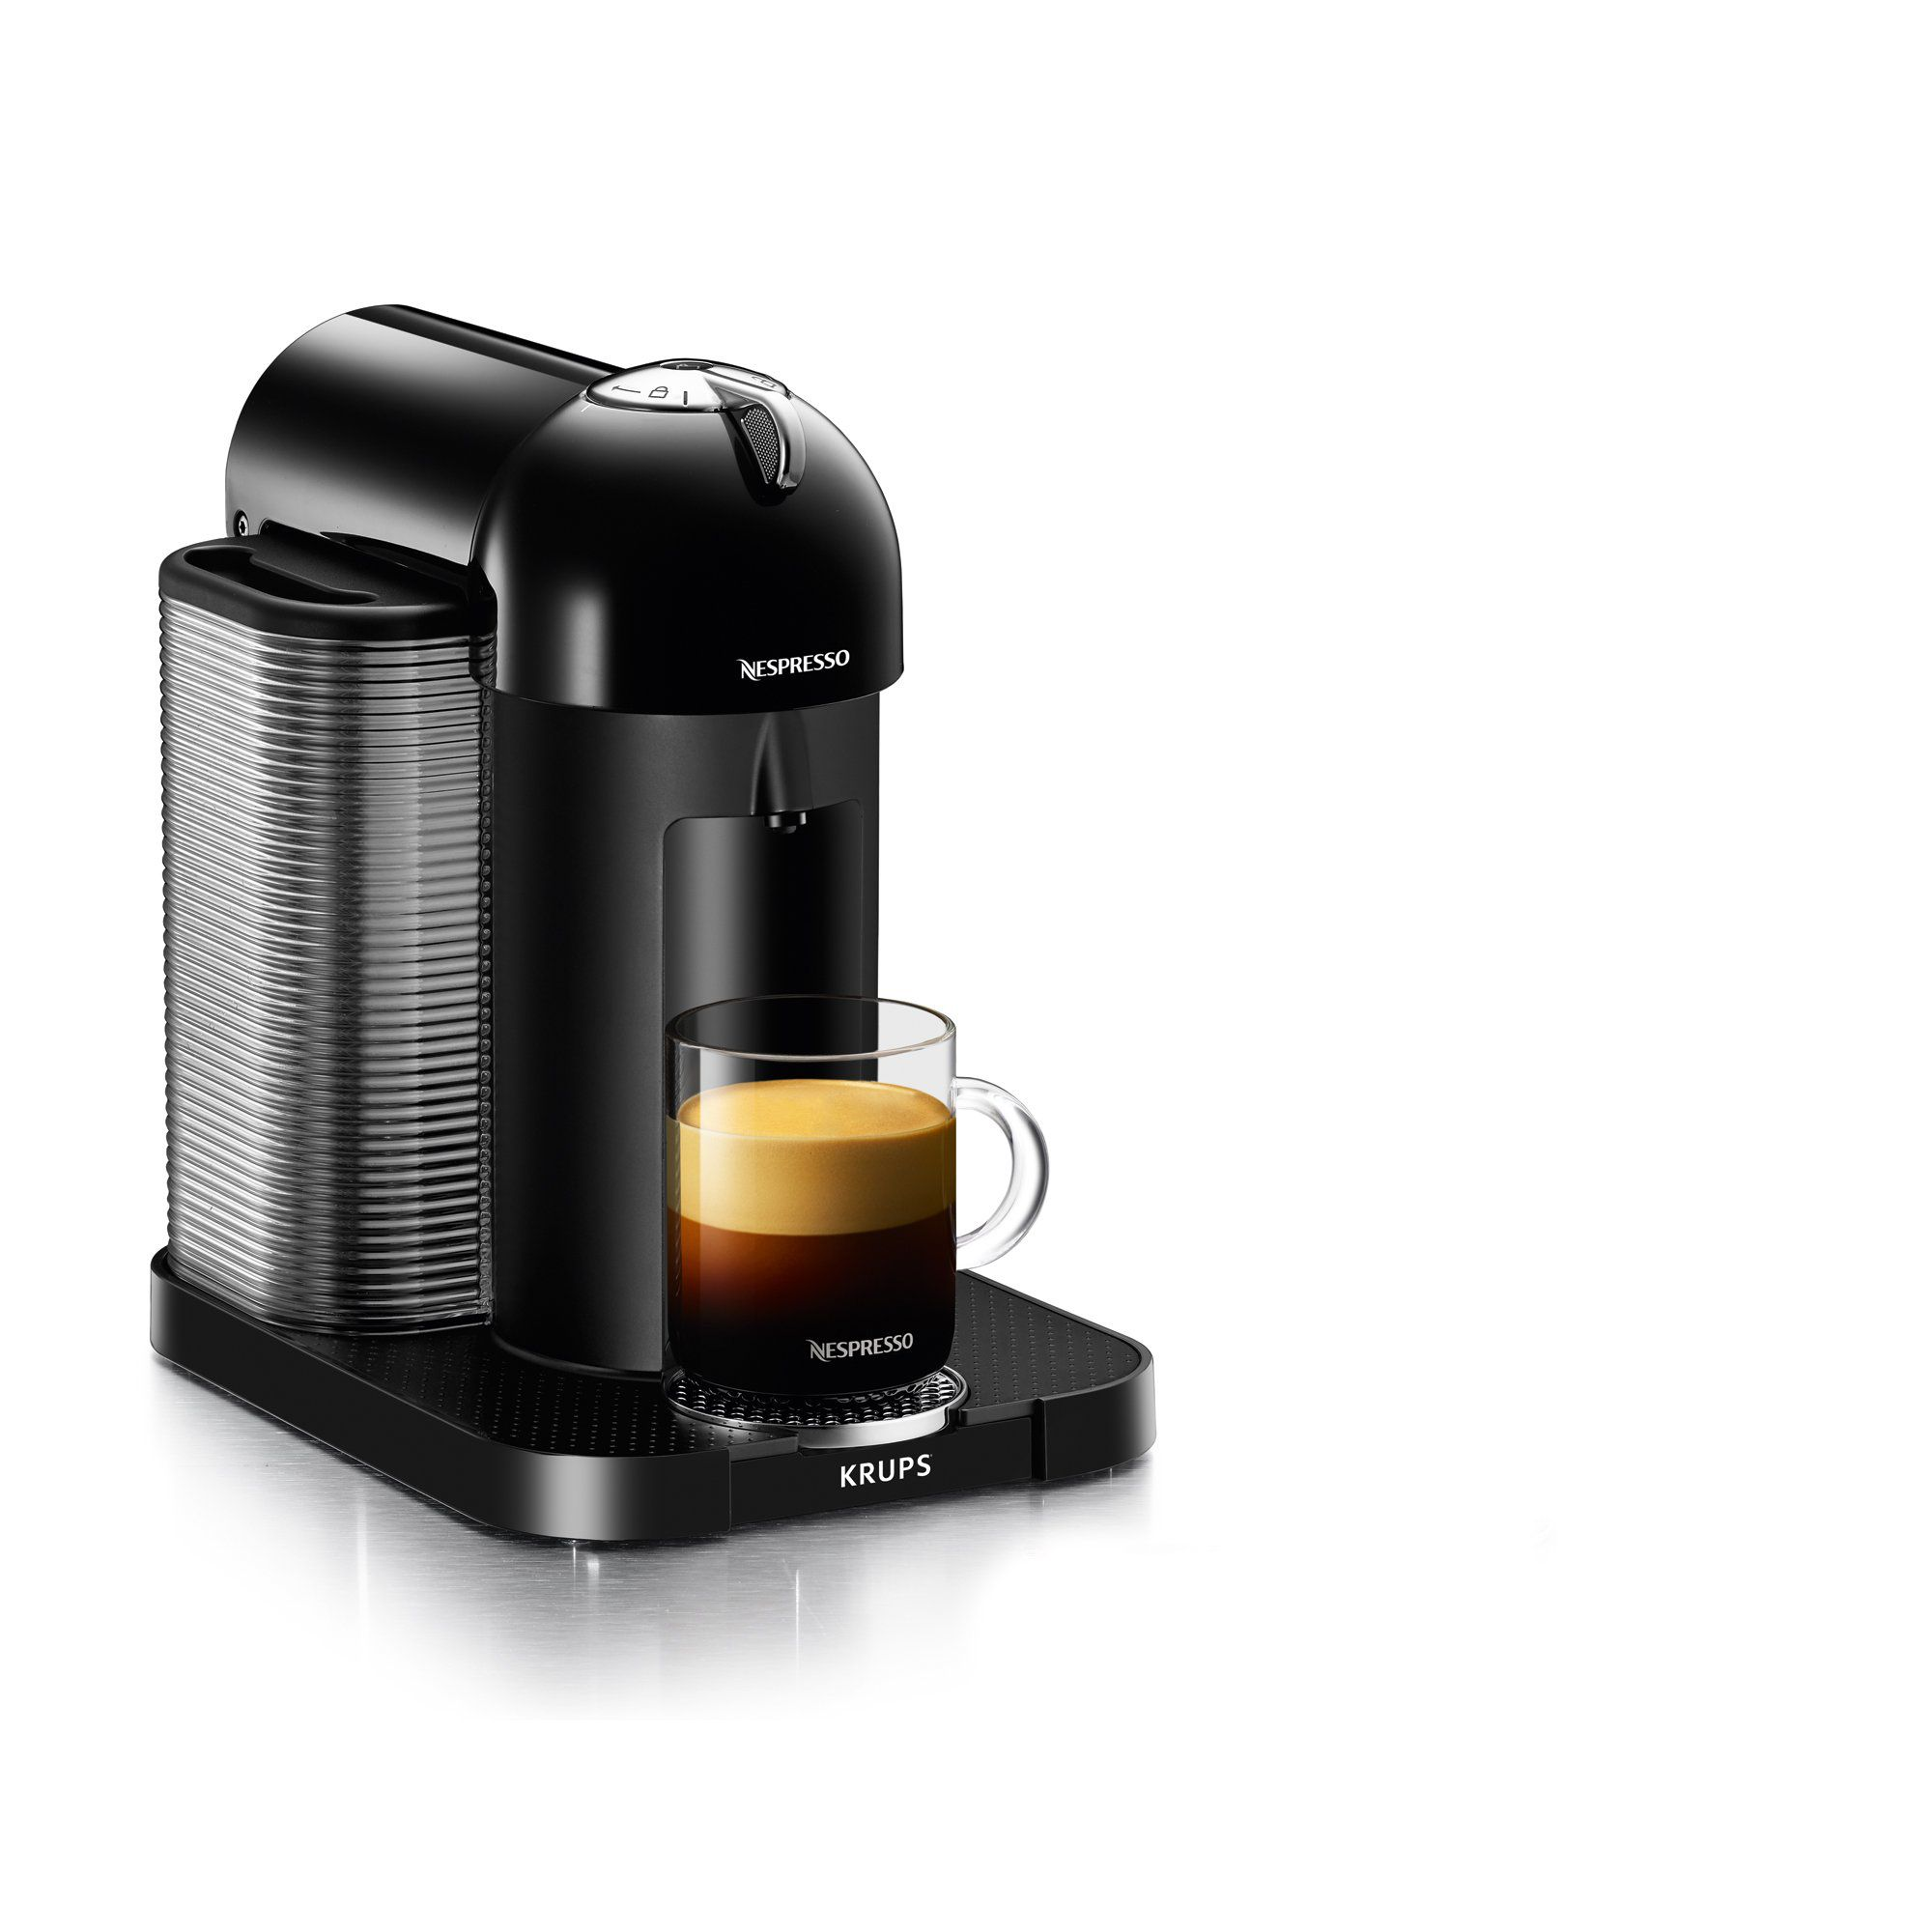 Krups Coffee Maker How To Use. Expand. Nescaf Dolce Gusto Oblo Manual By Krups. Buy Krups Dolce ...